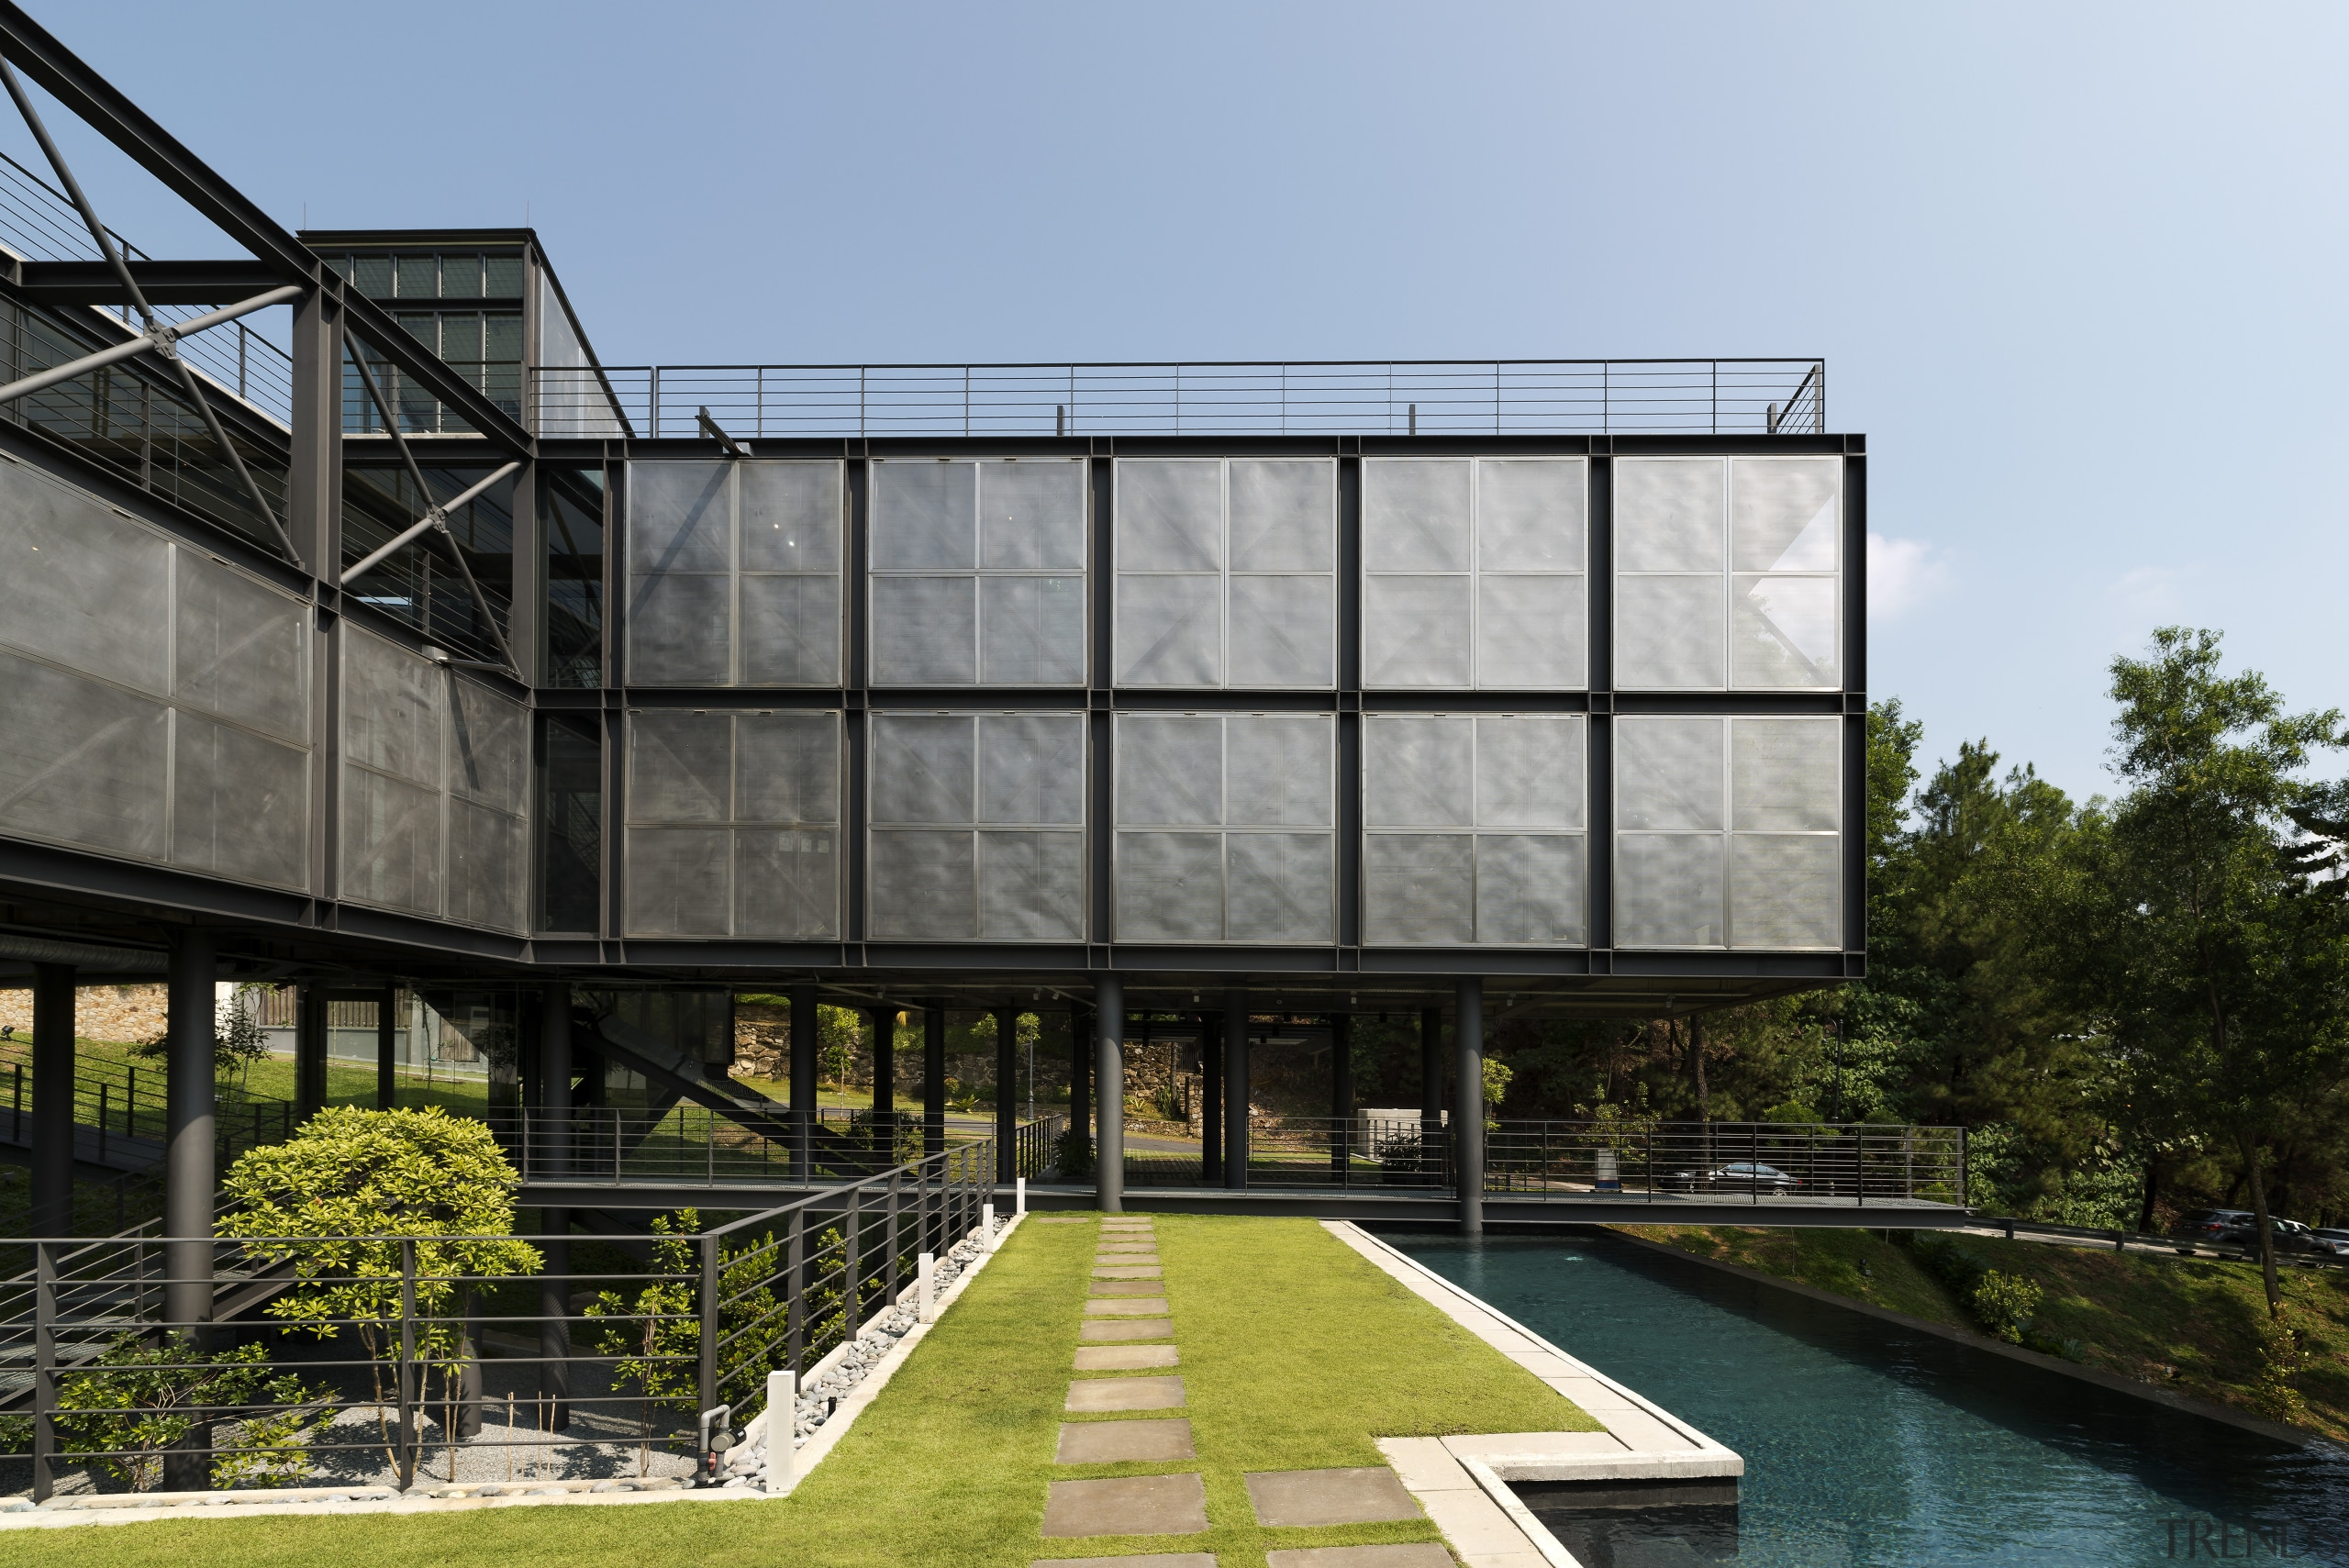 Perforated steel sunscreens create an outer skin but architecture, building, corporate headquarters, facade, house, reflection, black